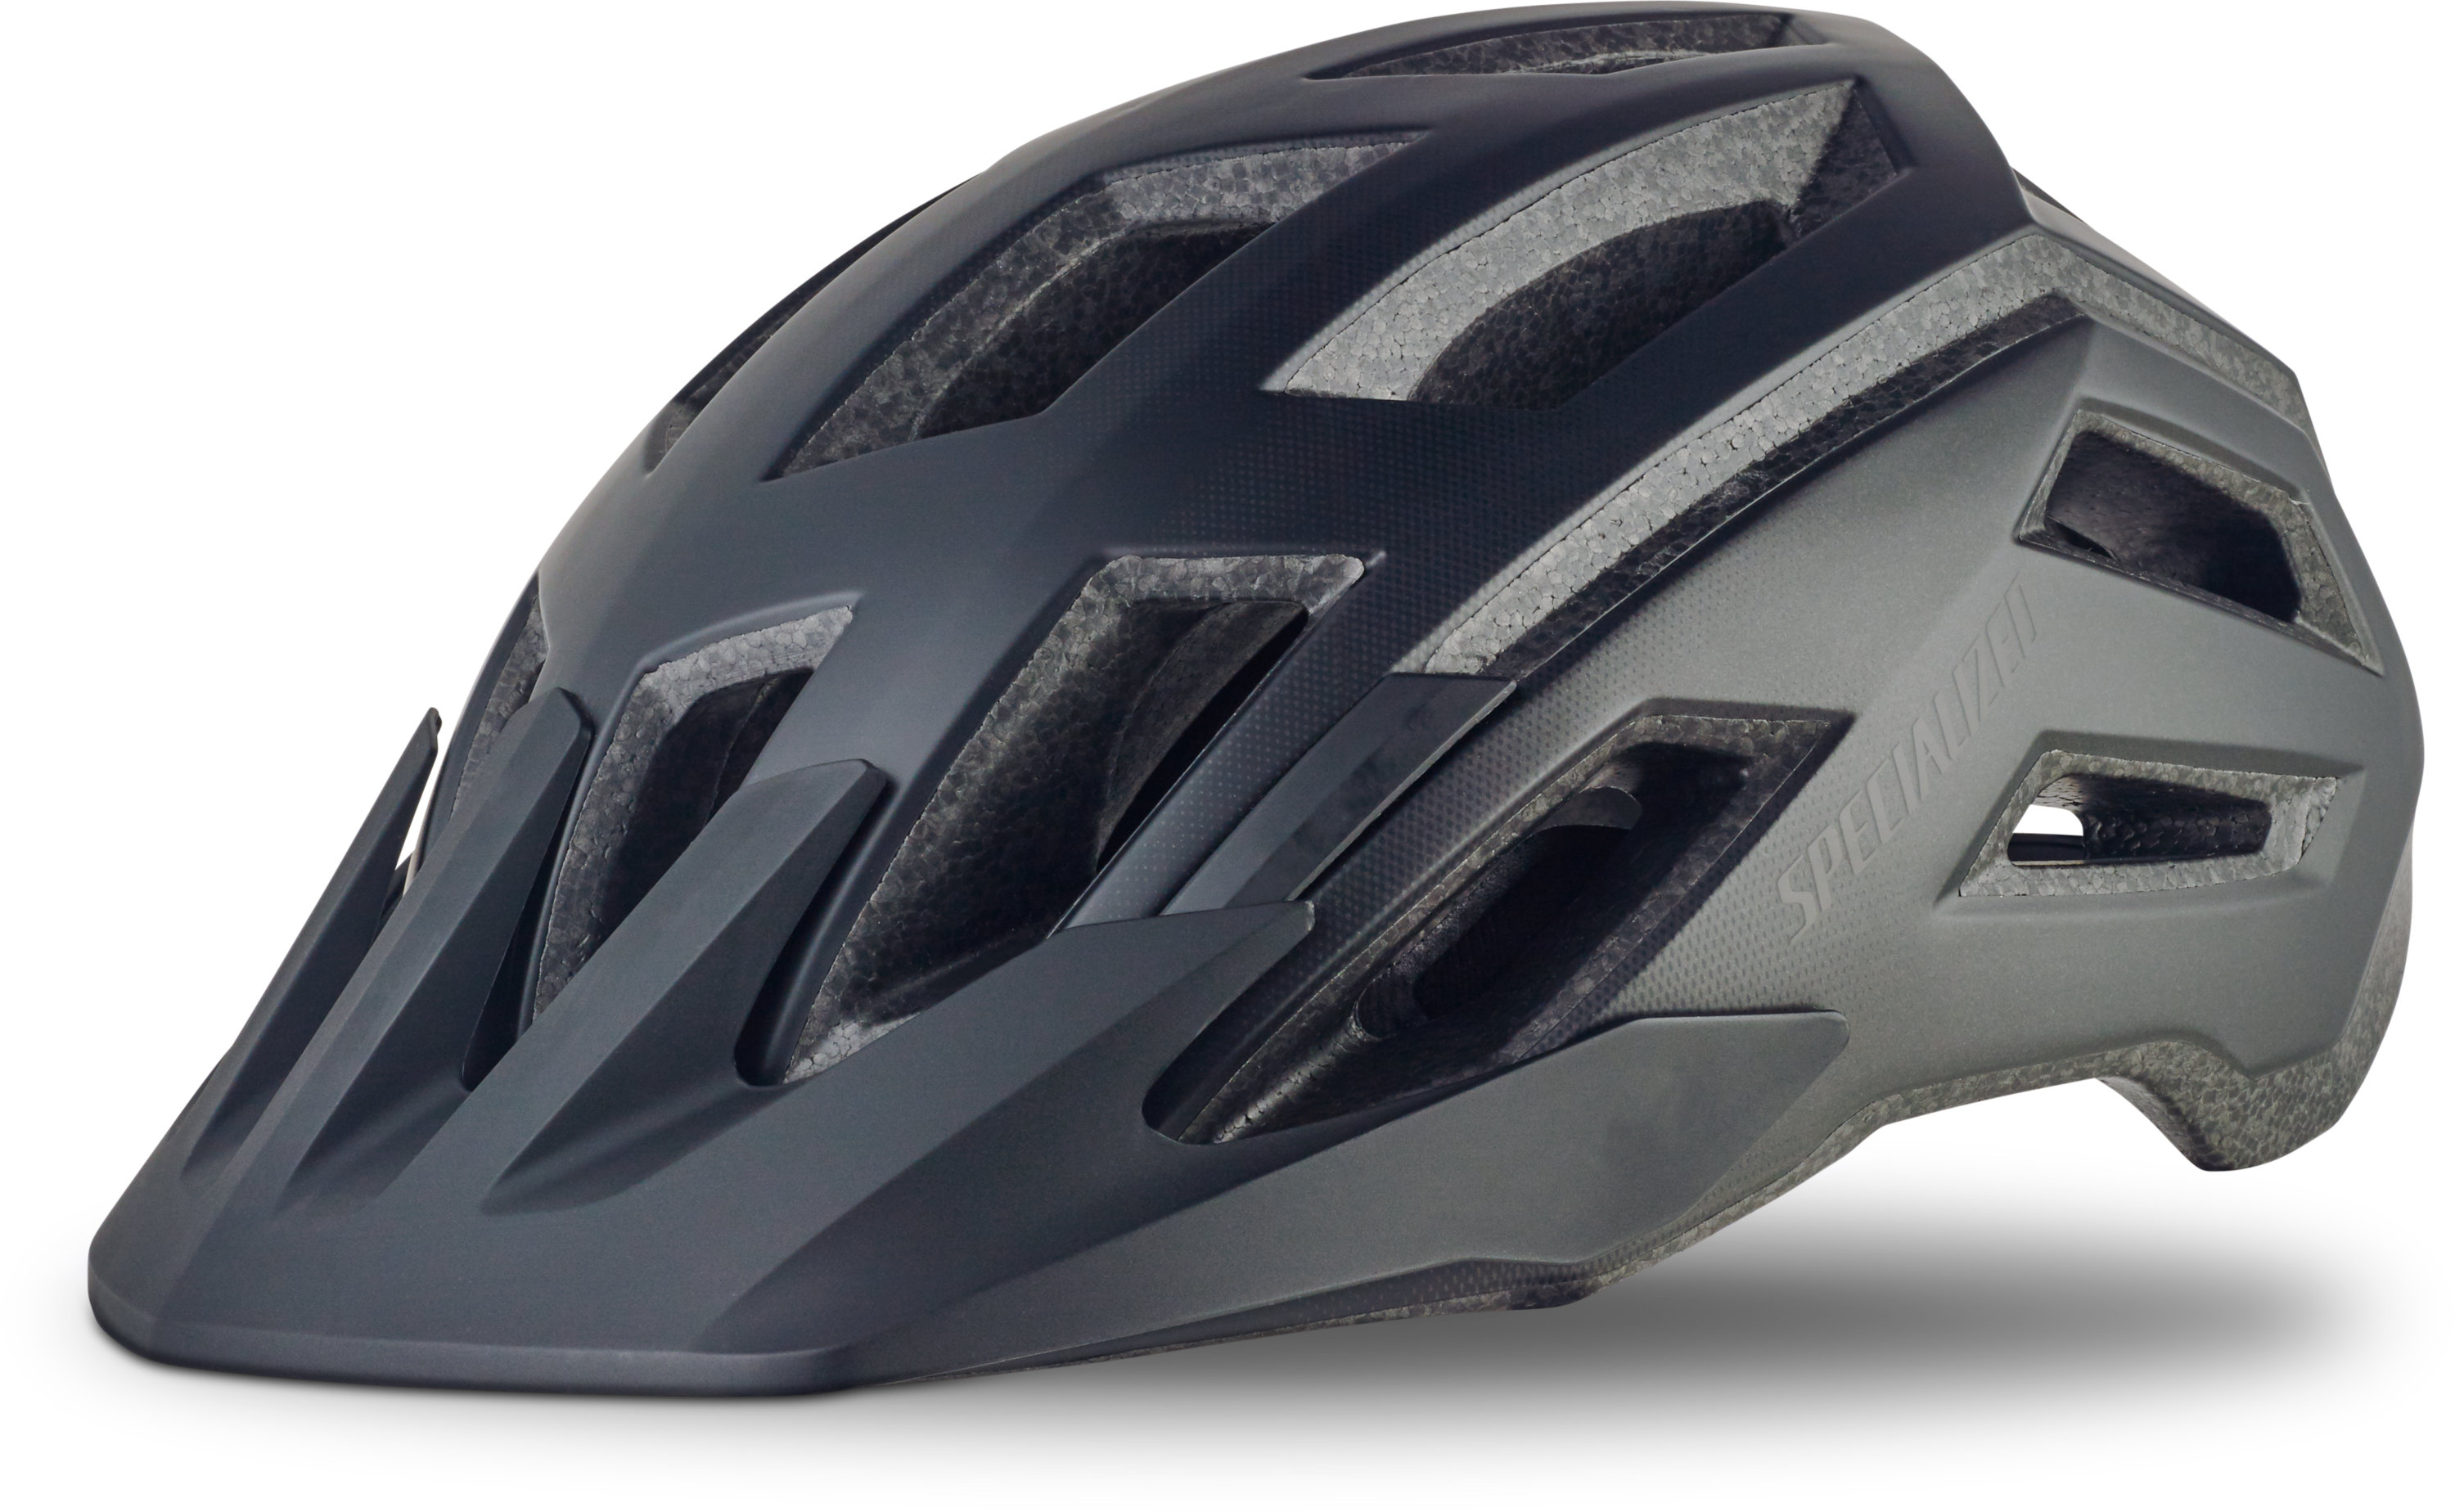 172645ef9 Capacete Specialized Tactic 3